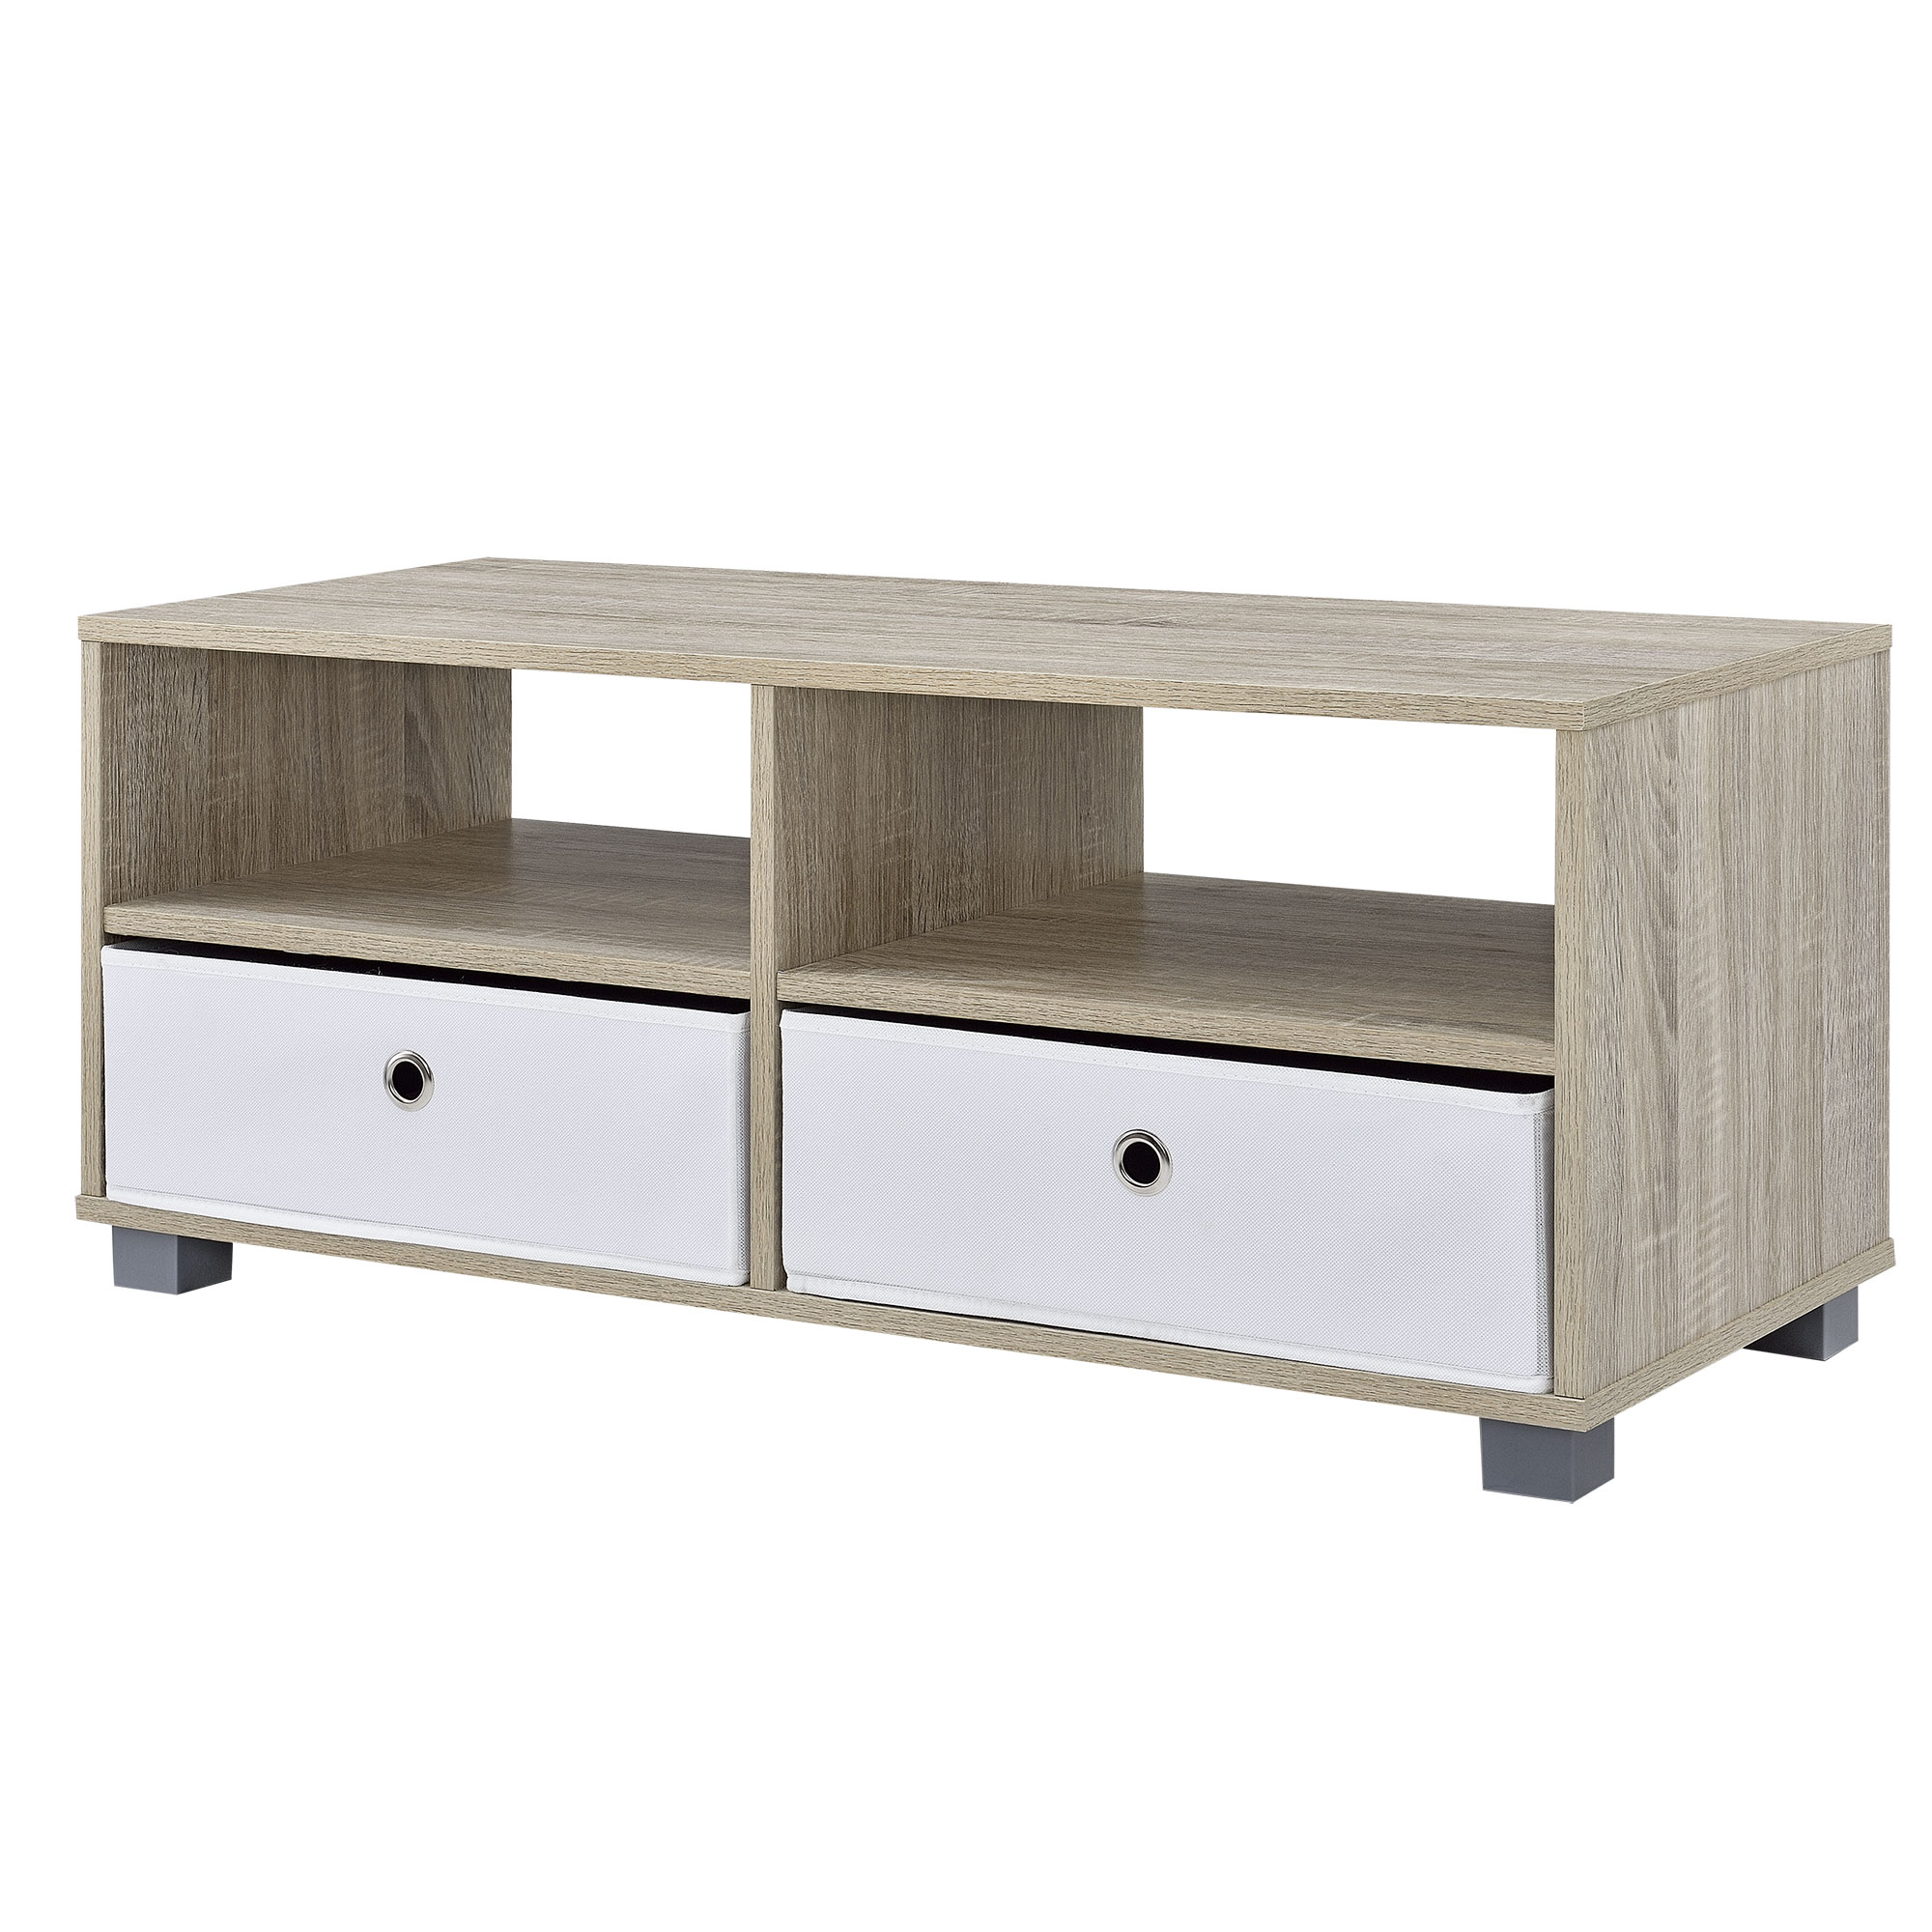 kleiderschrank sideboard nachttisch schreibtisch tv bank tisch schrank ebay. Black Bedroom Furniture Sets. Home Design Ideas